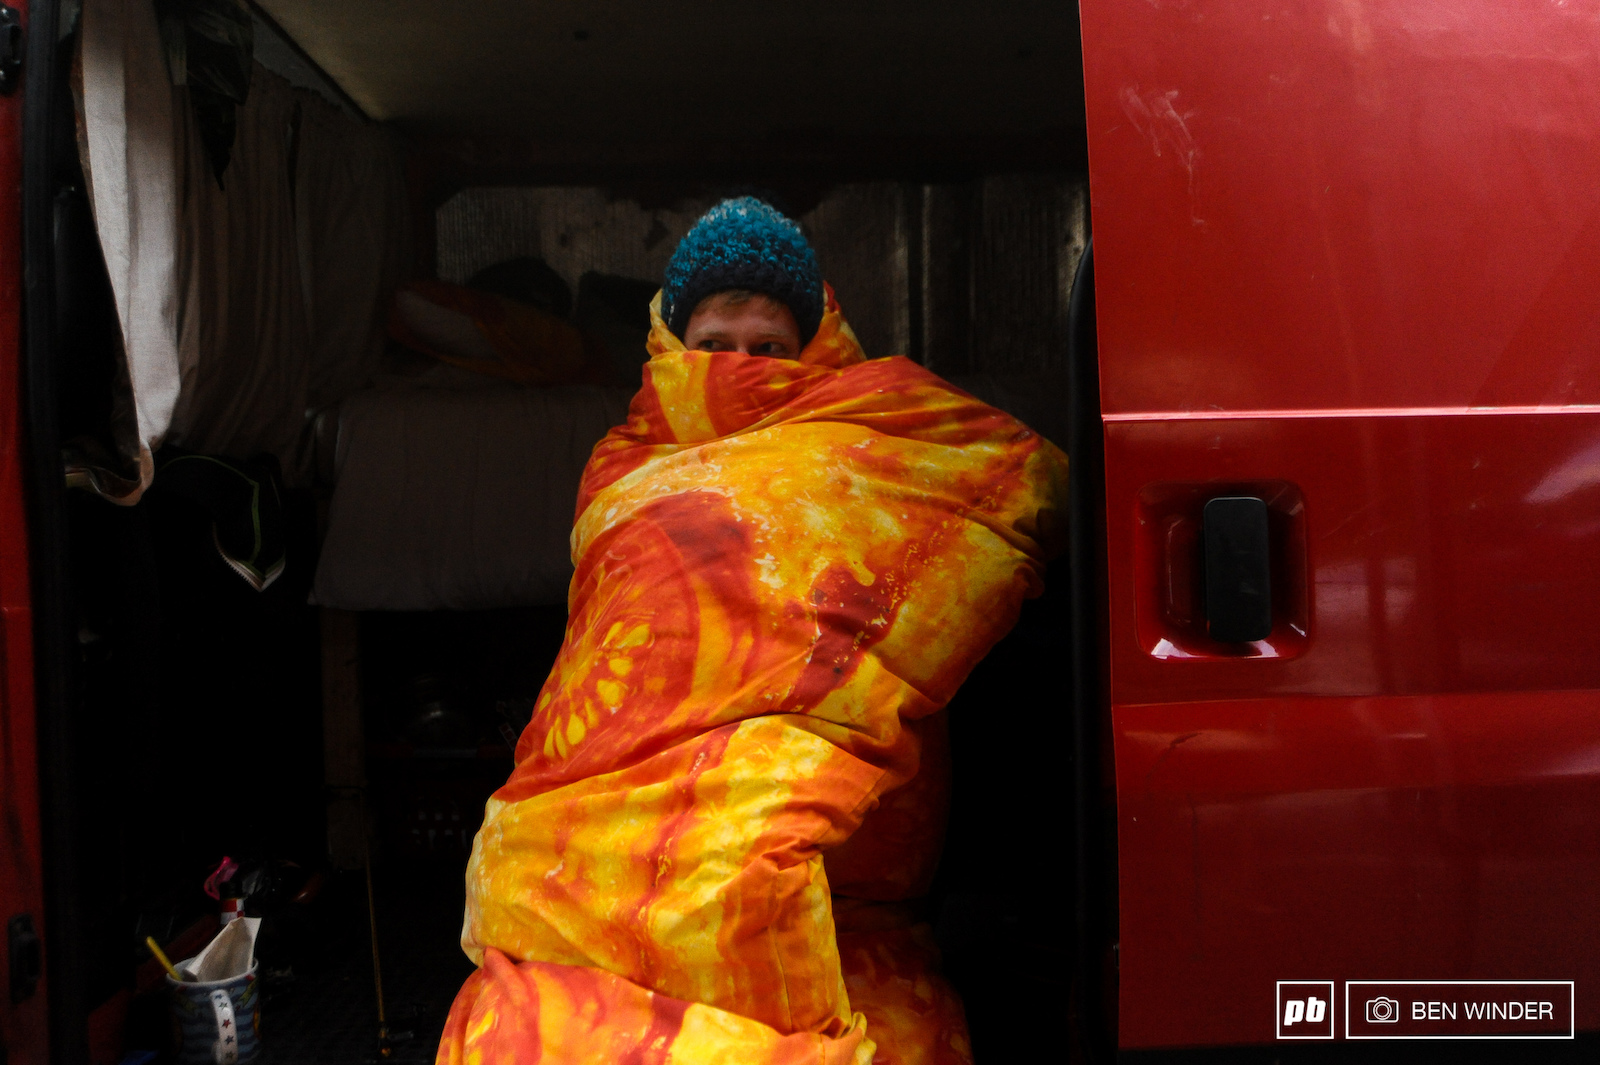 Tom Gaffney Norco Factory Racing Videographer living the high life wrapped up in a pizza.